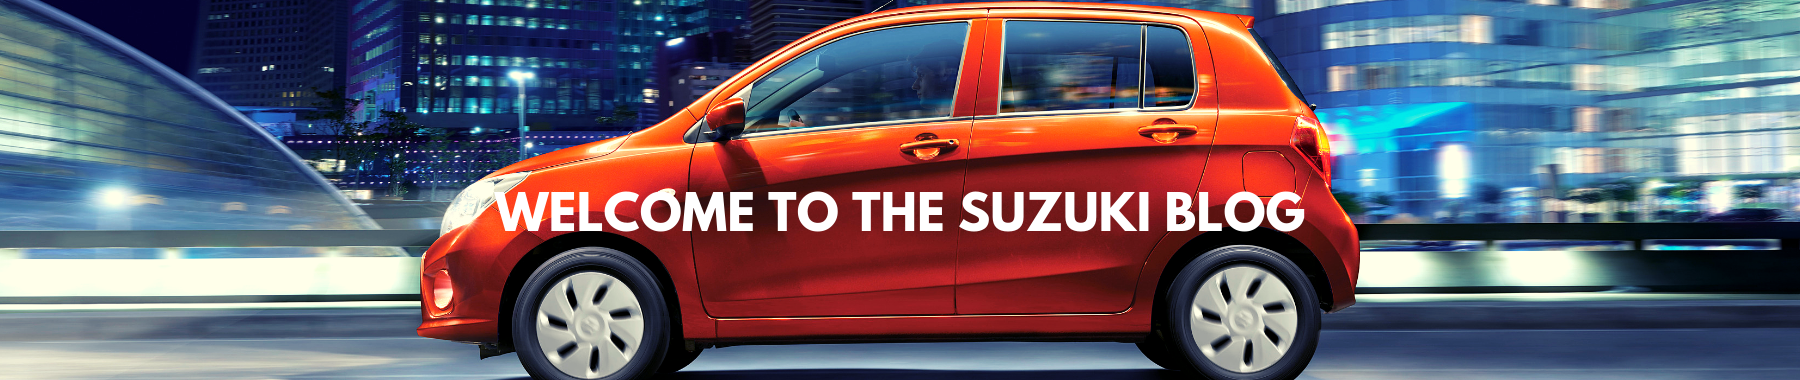 WELCOME TO THE SUZUKI BLOG